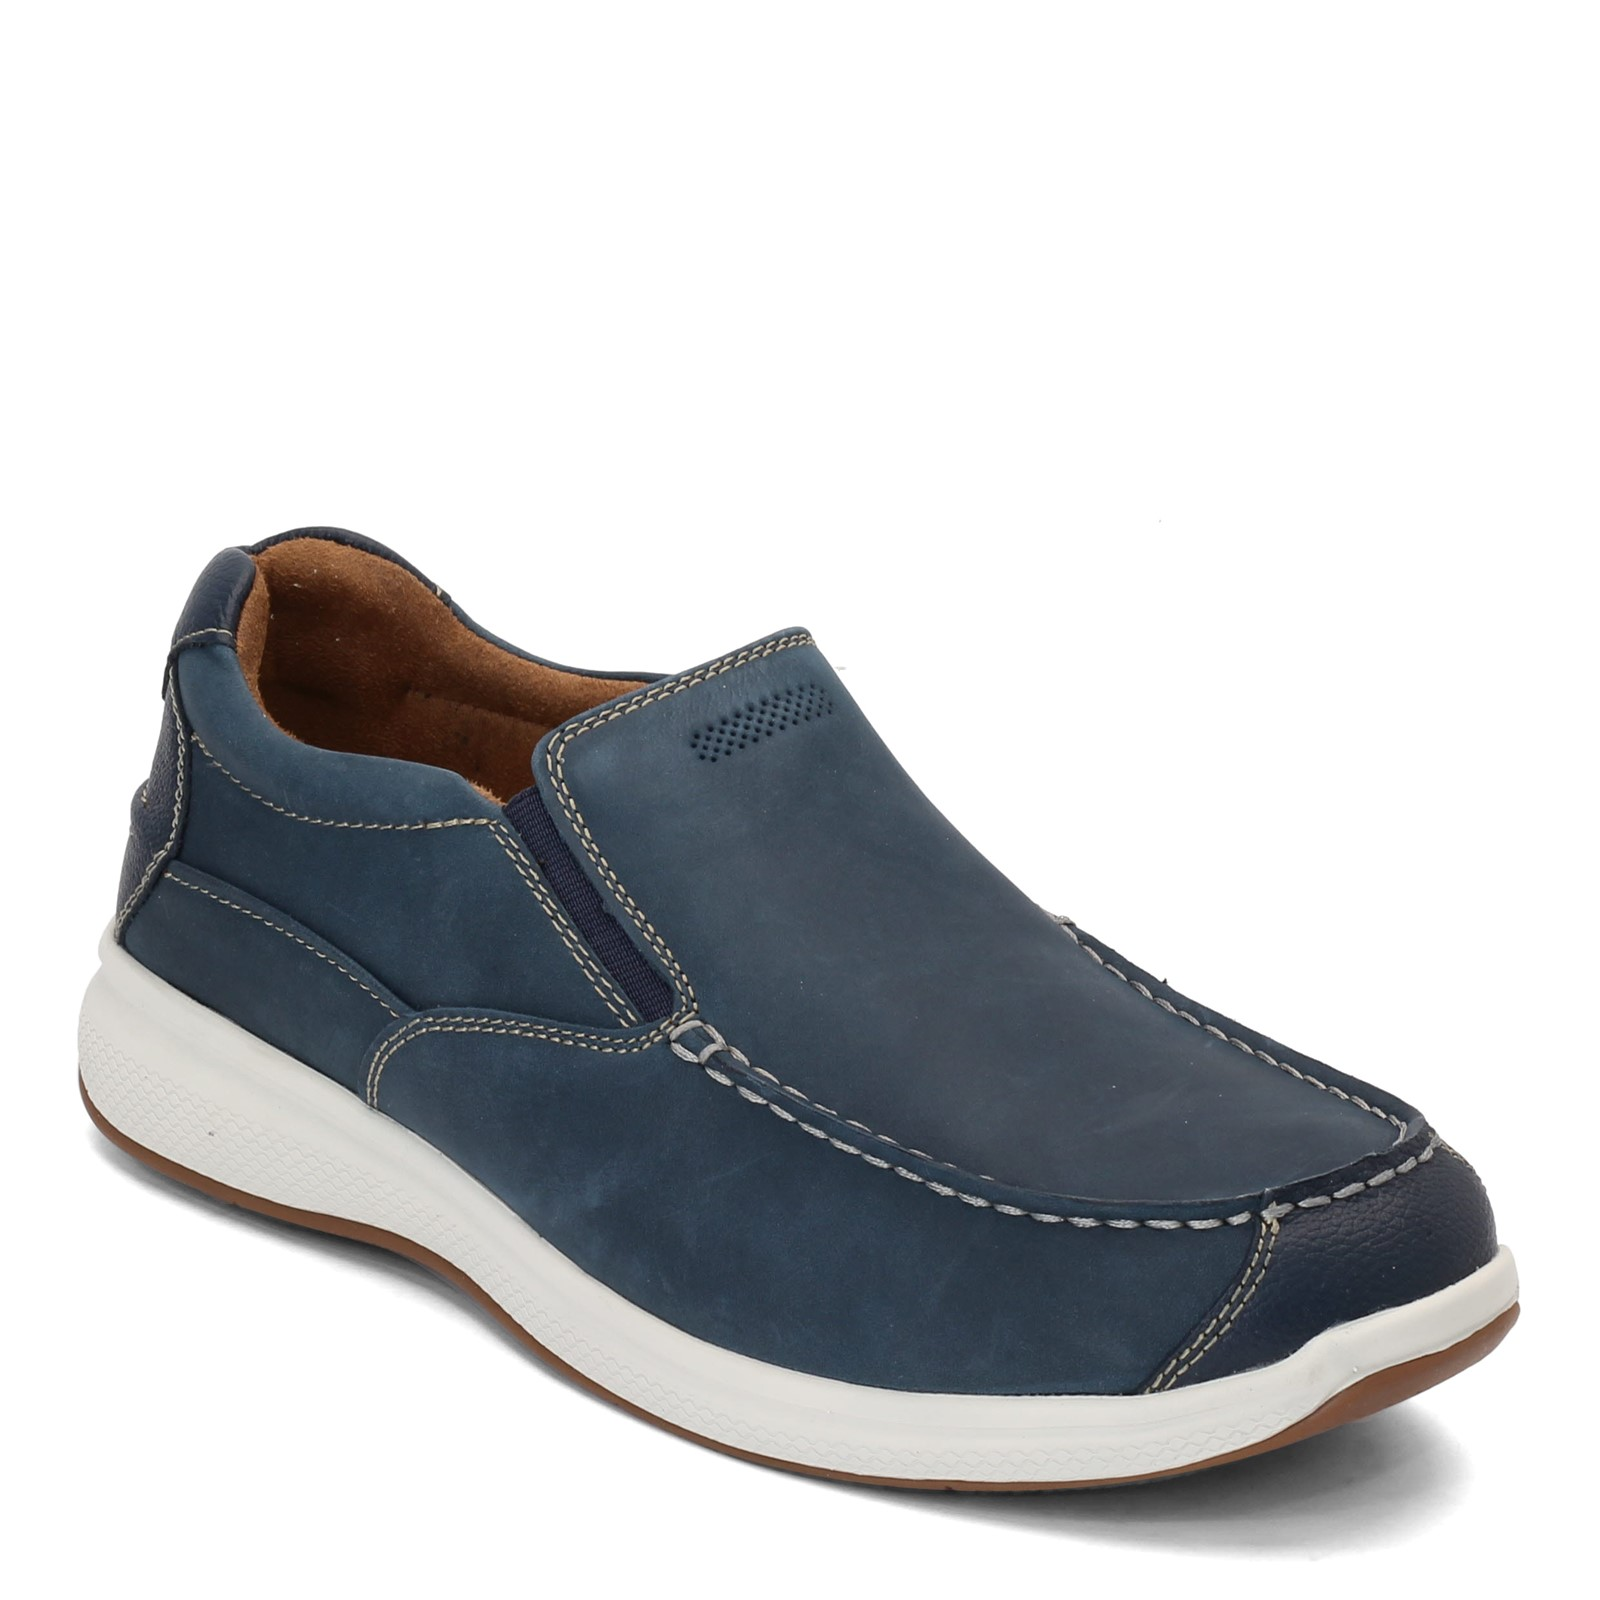 Men's Florsheim, Great Lakes Slip-On